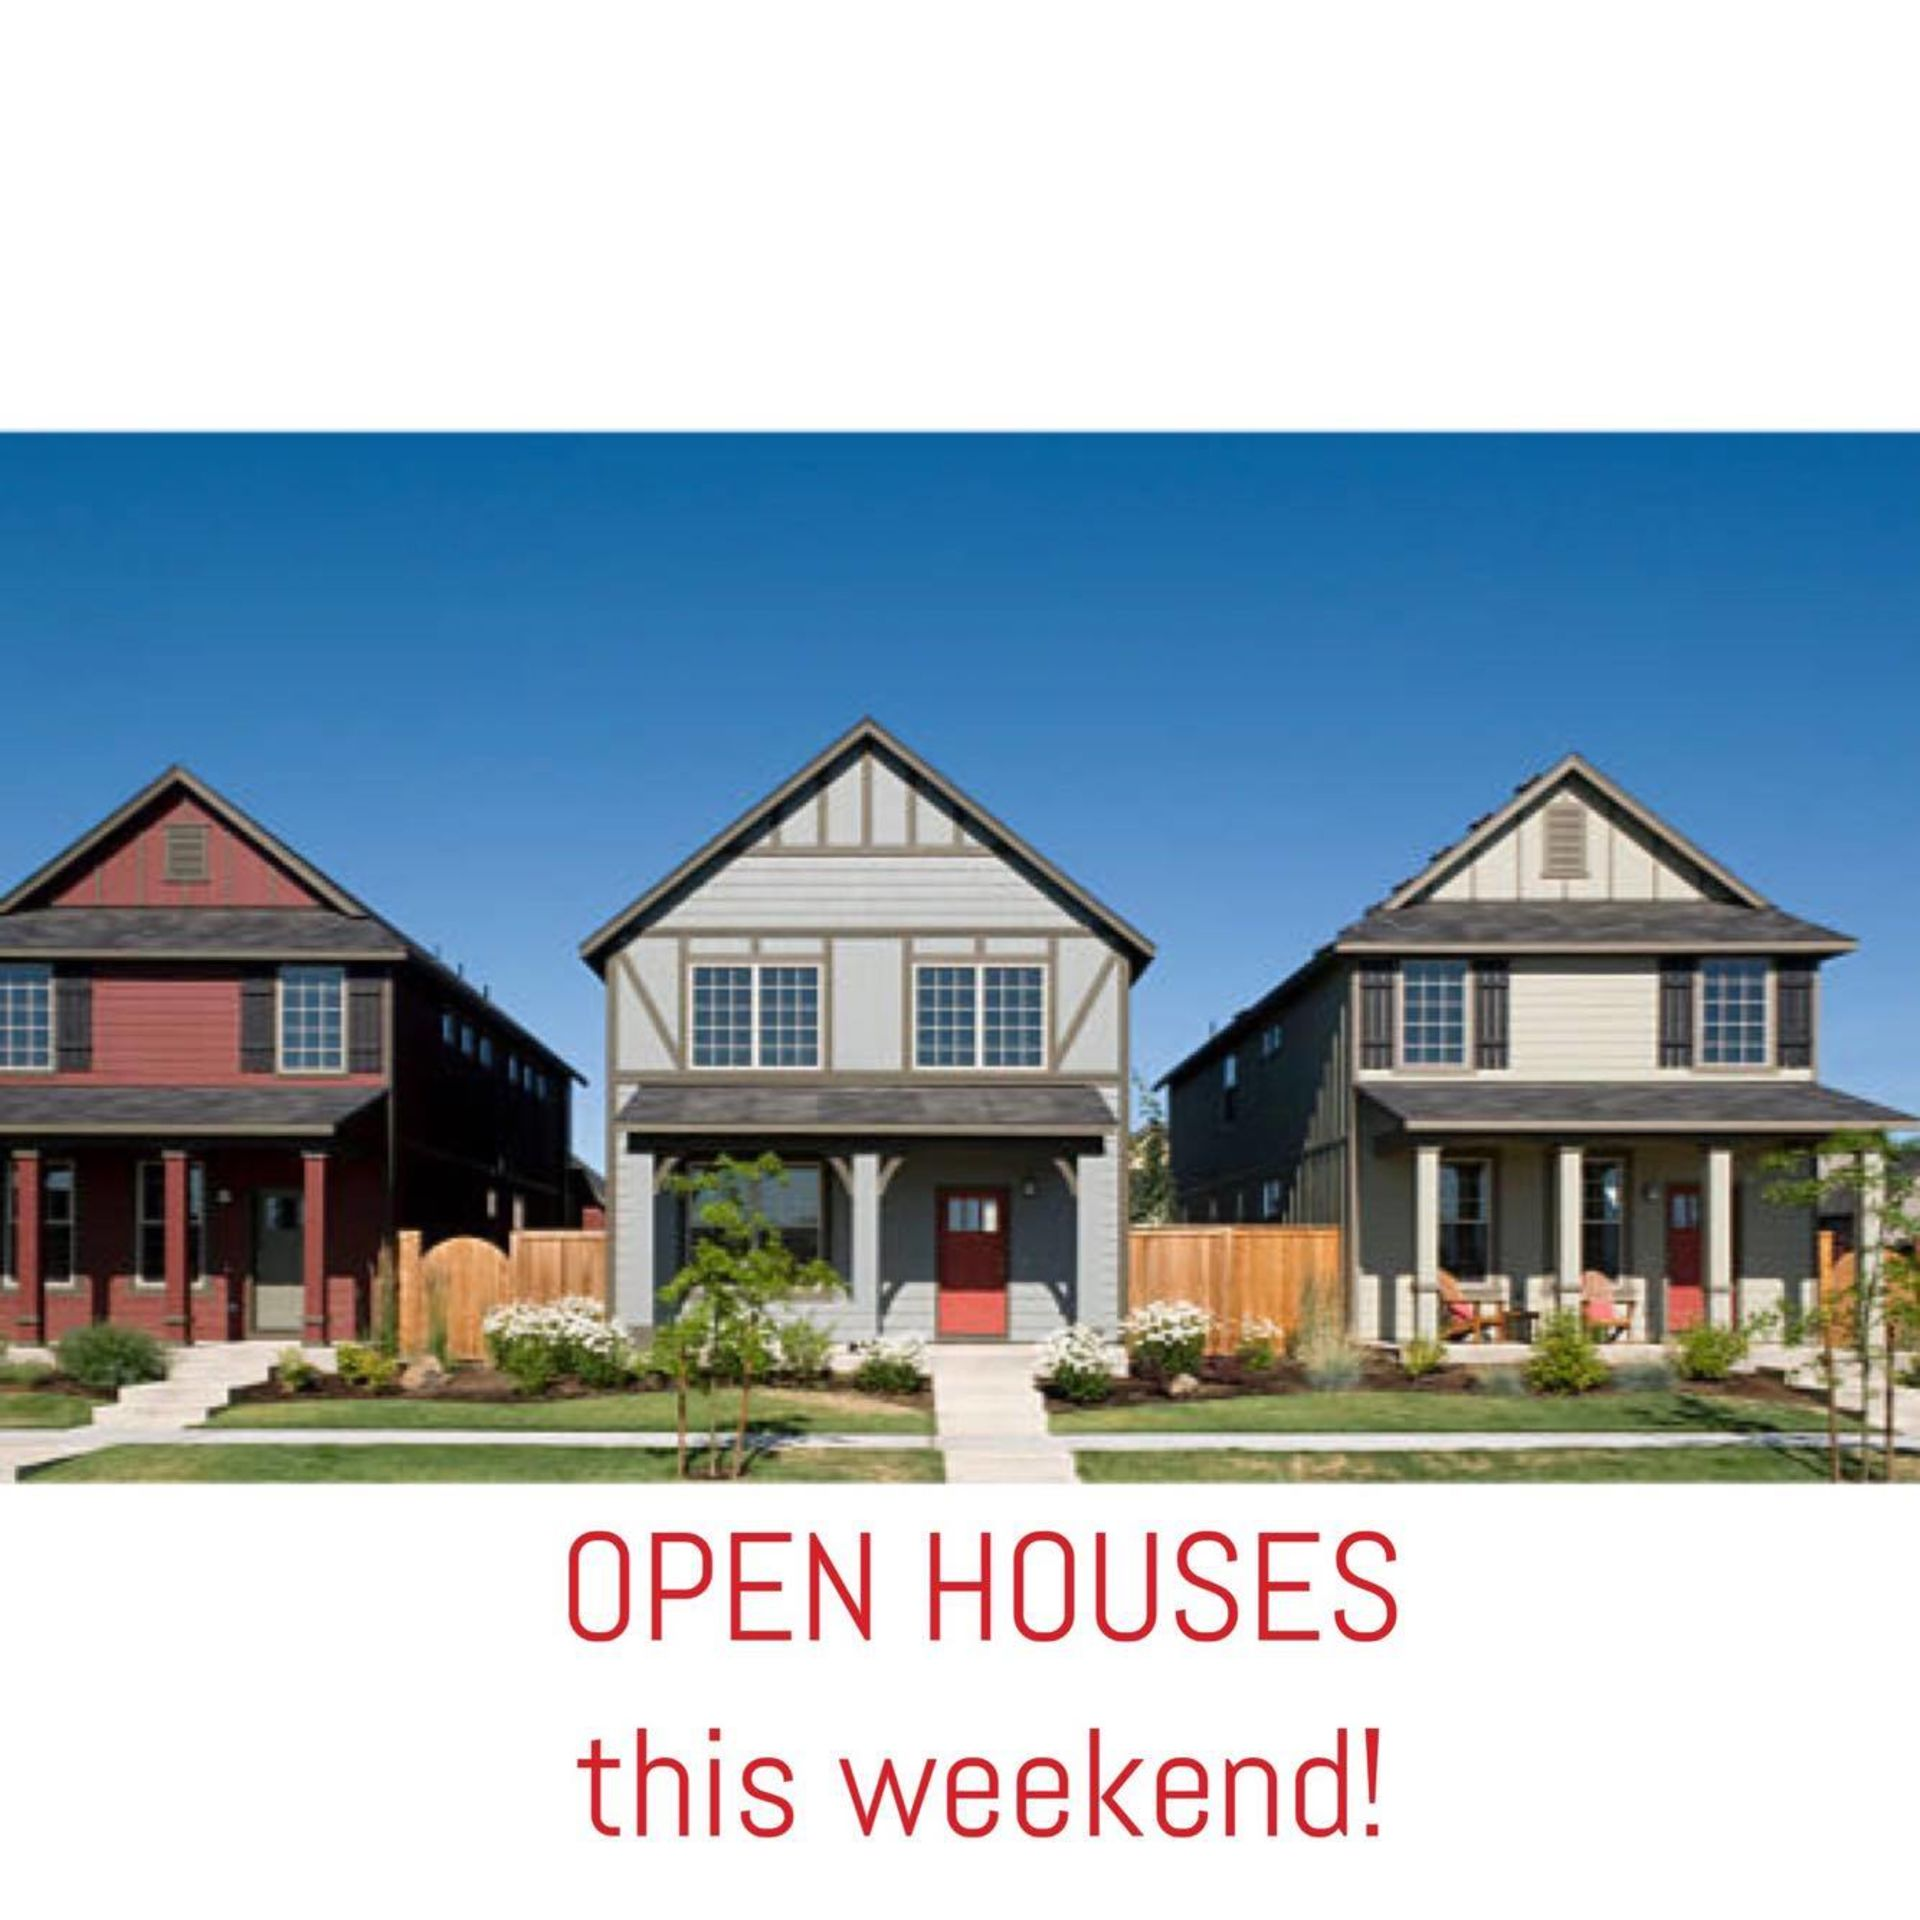 OPEN HOUSES THIS WEEKEND in WNY (Dec 9th and 10th)